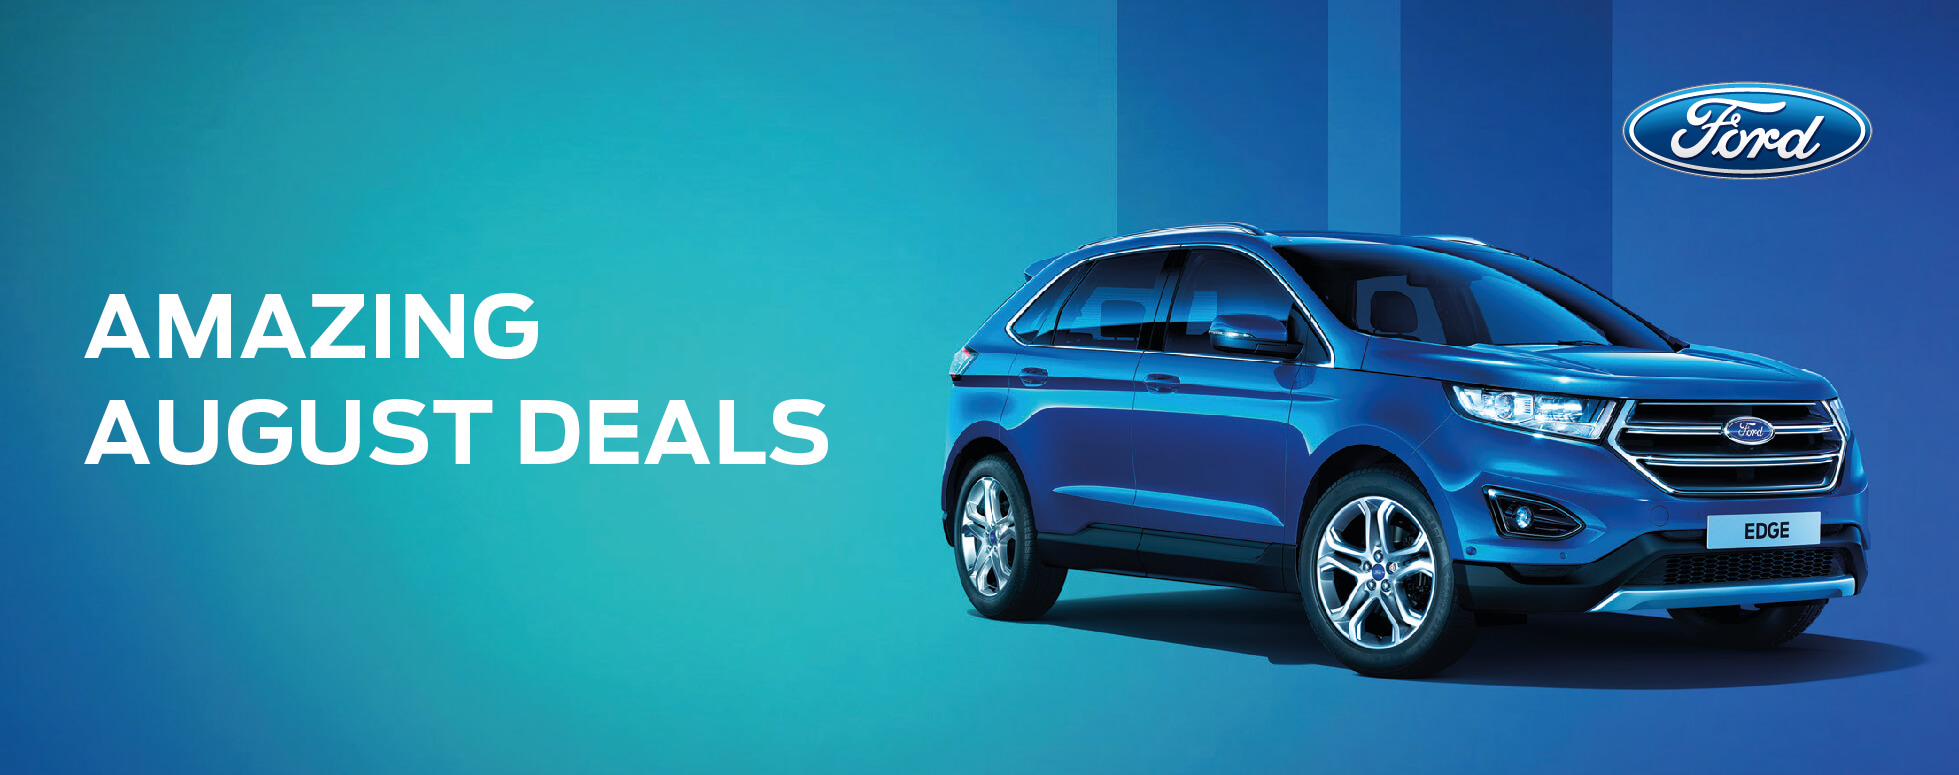 Ford New Car Deals Bristol Street Motors